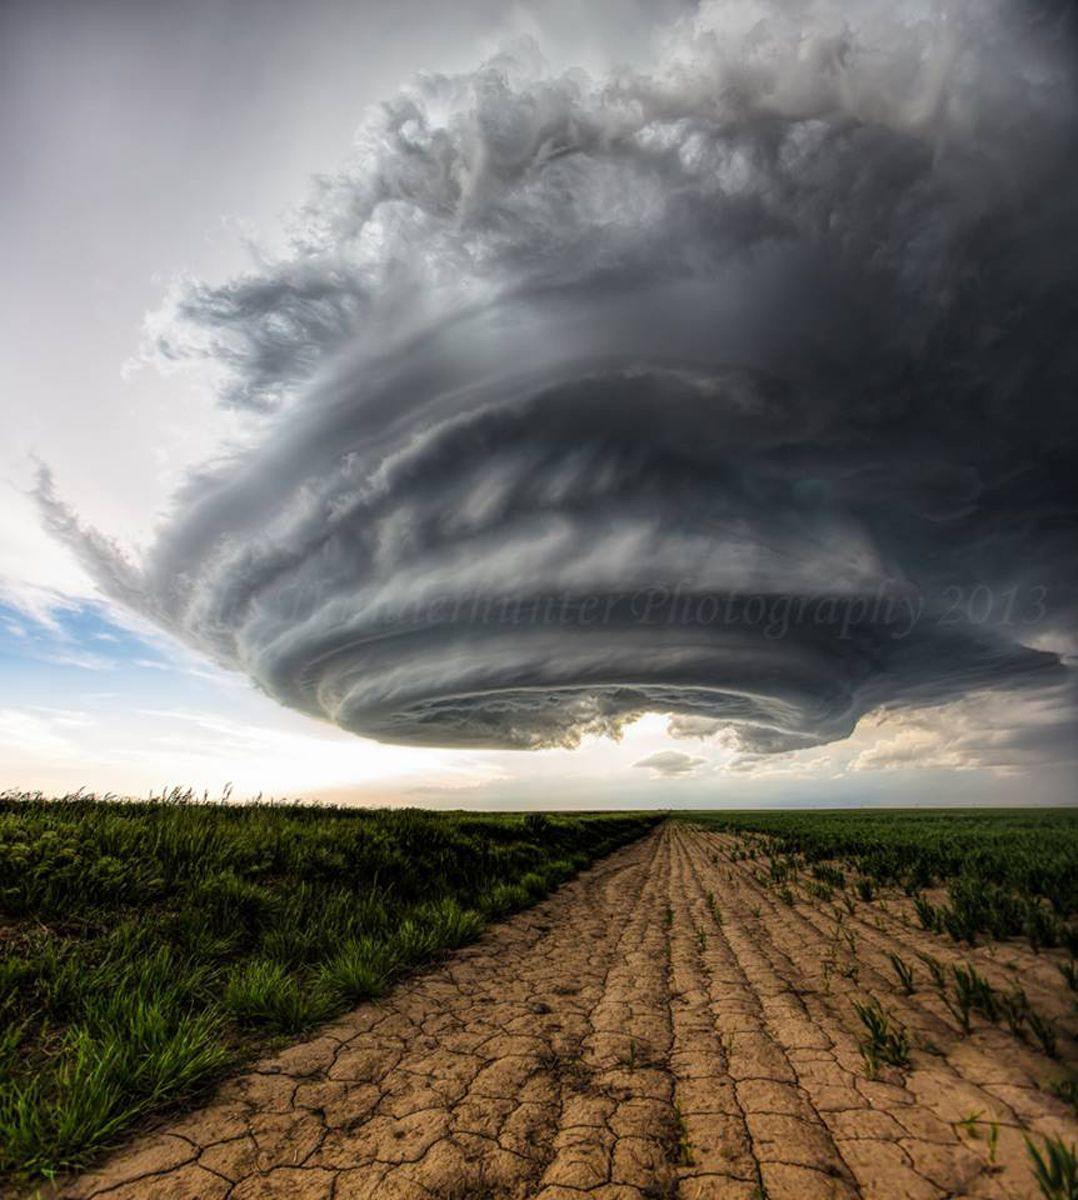 The top 10 weather photographs shared in the Mr Twister Weather Snapshot group on May 26th 2014 #1 Brad Hannon (336 Likes) 5 shot vertical stitched panora